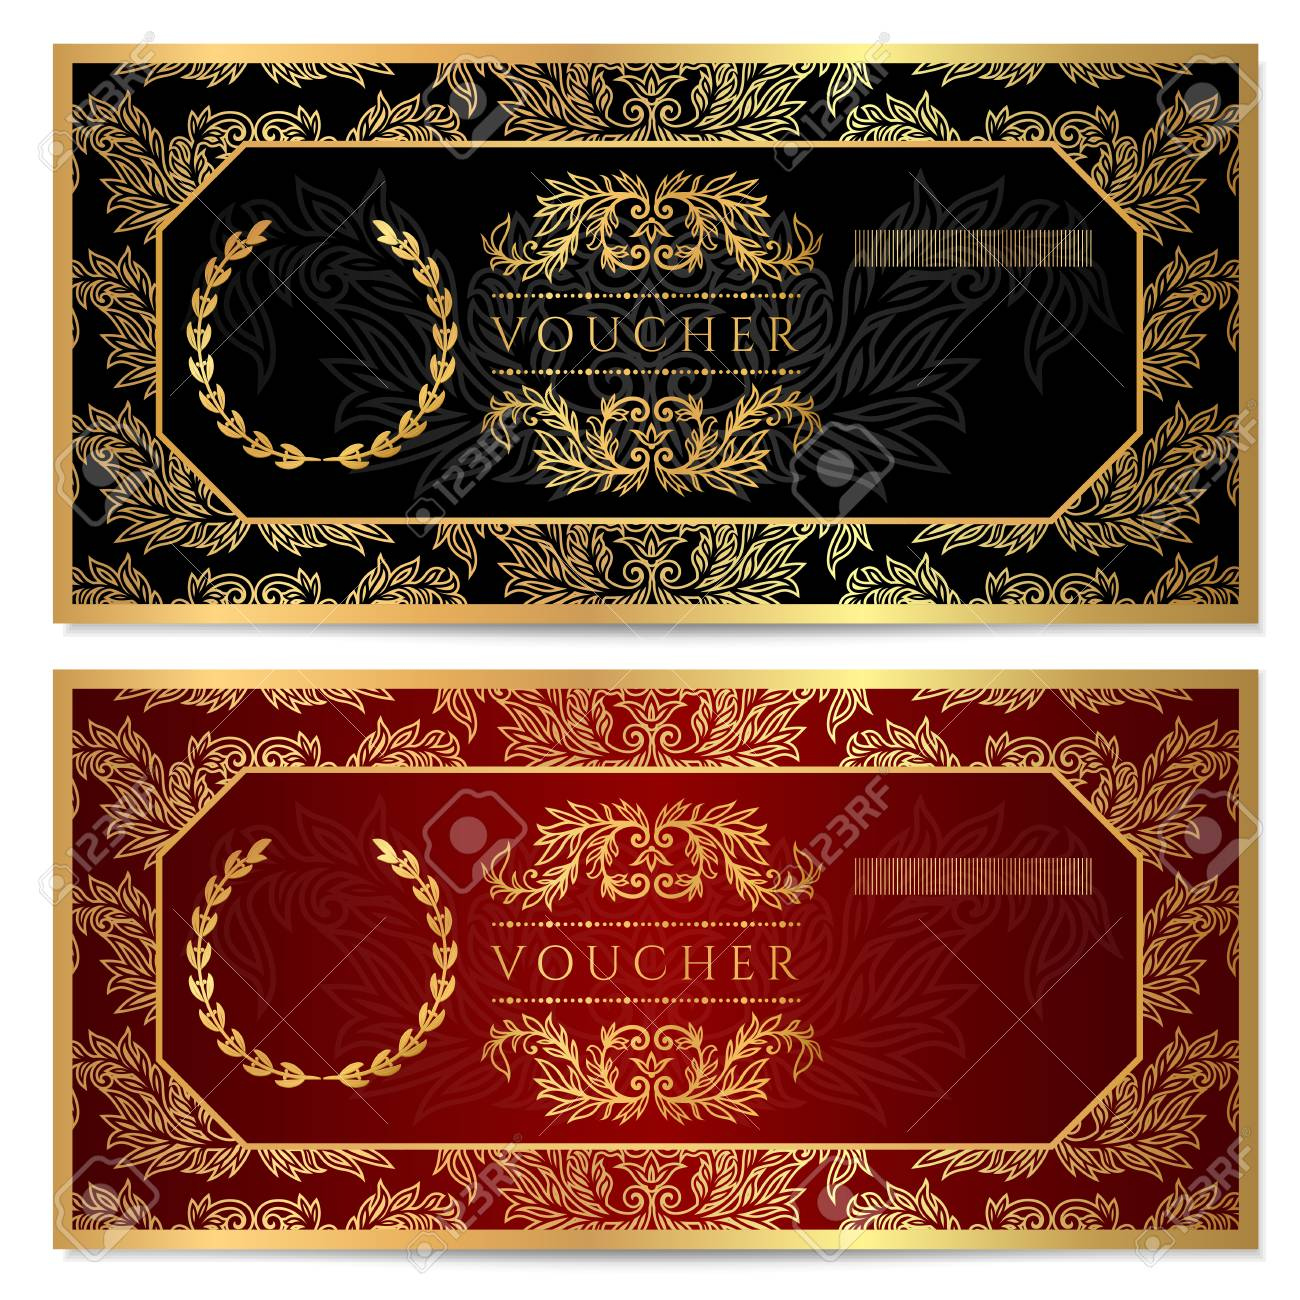 Voucher gift certificate coupon template floral scroll pattern voucher gift certificate coupon template floral scroll pattern frame yadclub Gallery